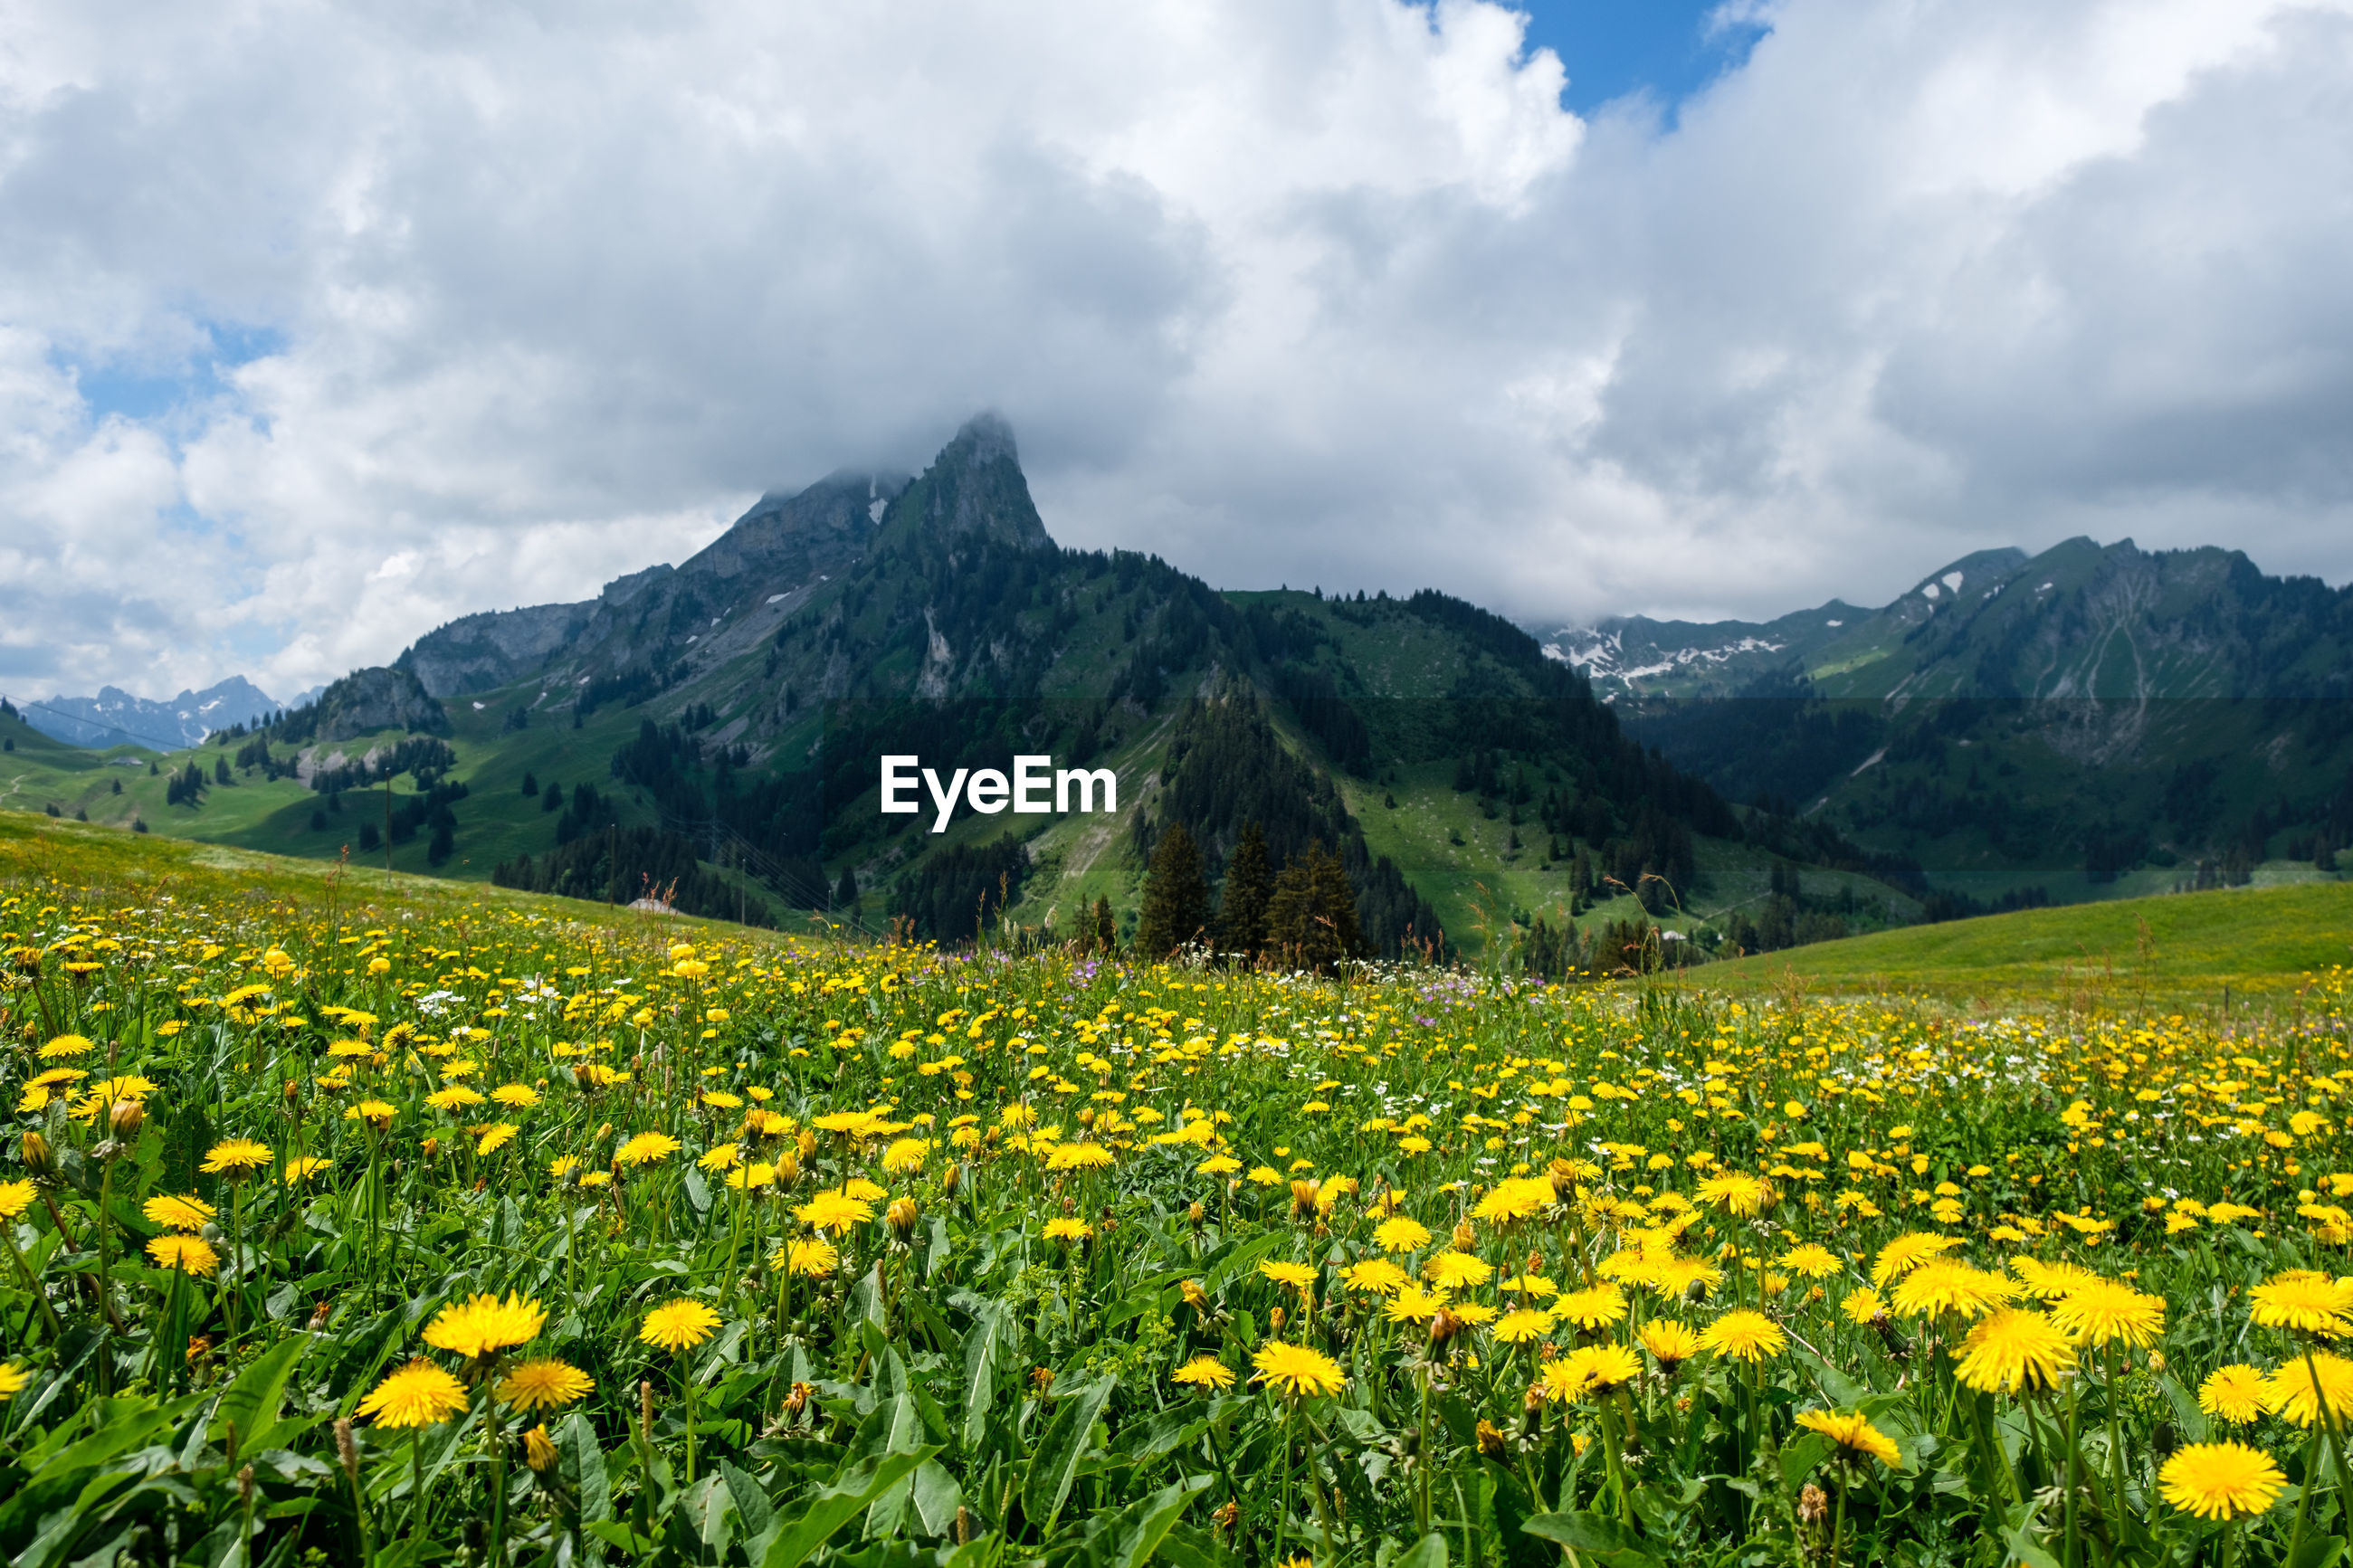 VIEW OF YELLOW FLOWERS GROWING ON FIELD